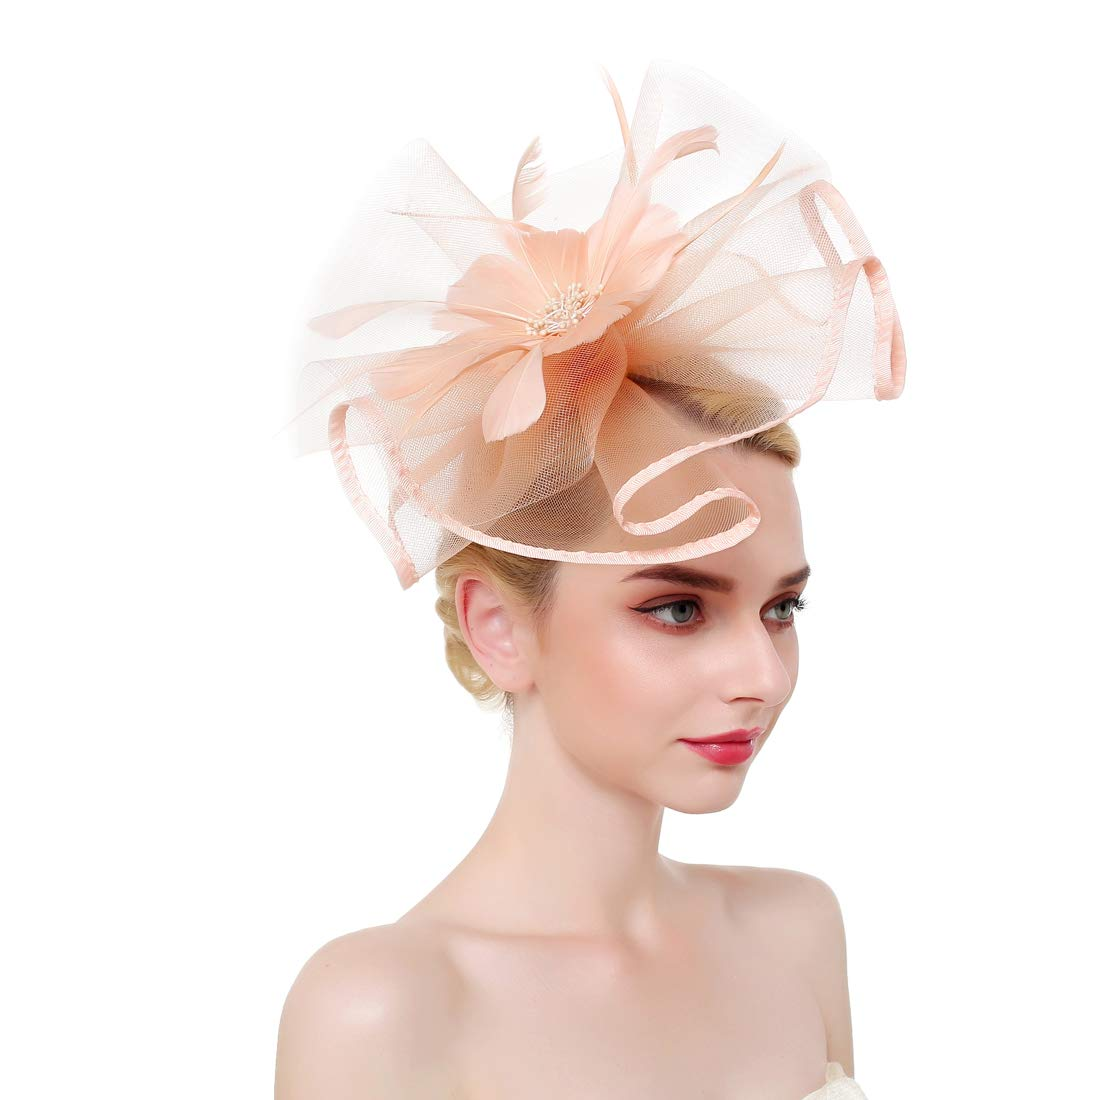 Navy VGLOOK Flower Cocktail Tea Party Headwear Feather Fascinators Derby Hat for Girls and Ladies